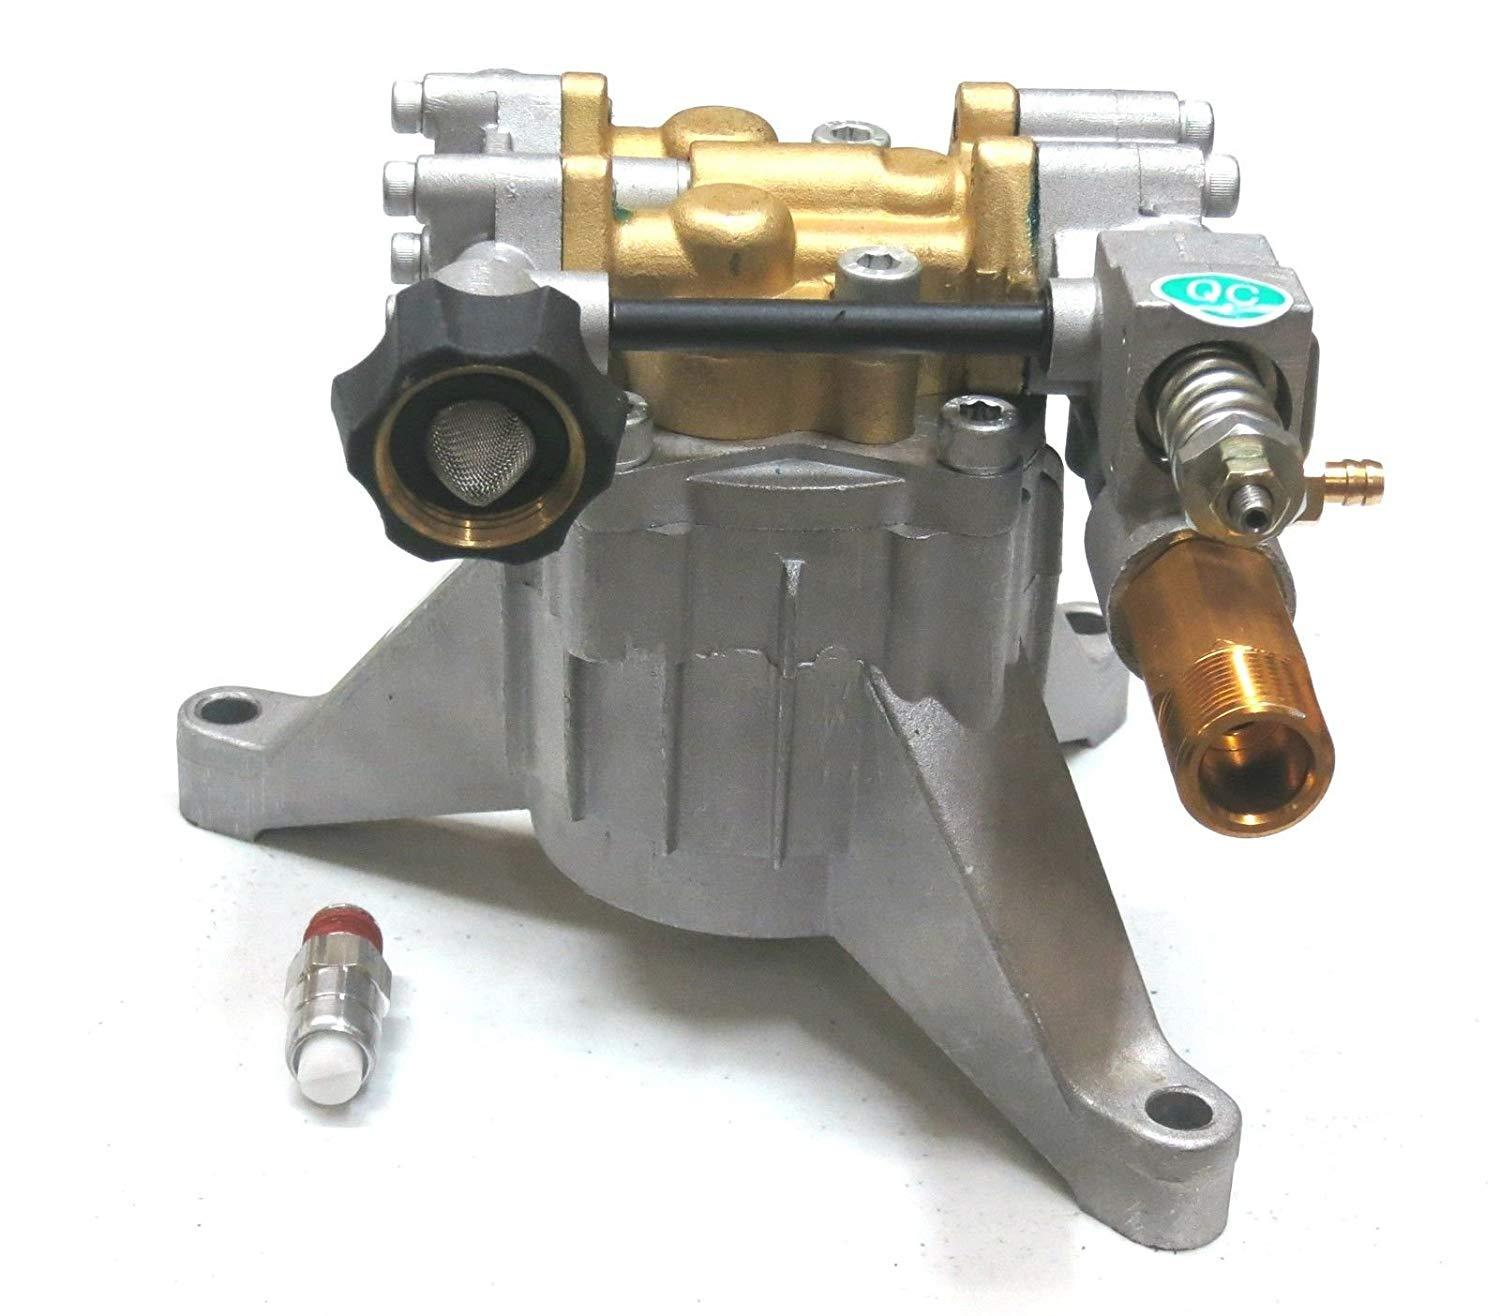 3100 PSI Upgraded POWER PRESSURE WASHER WATER PUMP Campbell Hausfeld PW2055V2LE ,,#id(theropshop; TRYK129271492546453